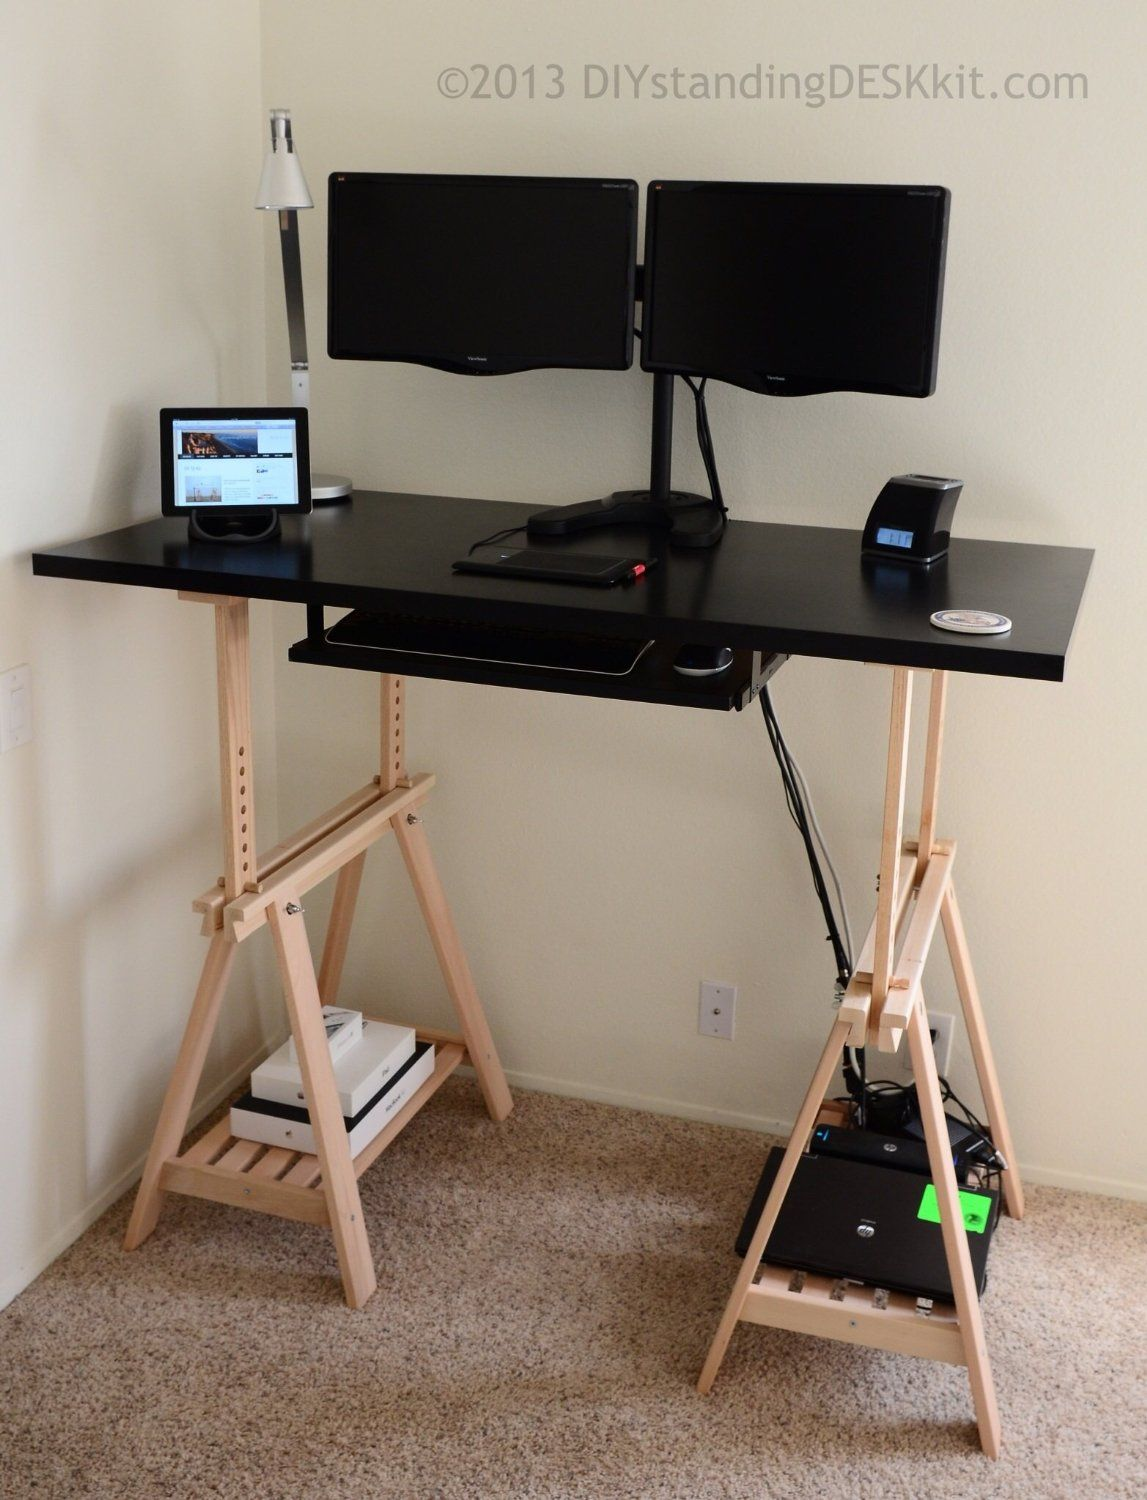 diy standing desk kit the adjustable hight standing desk standup desk conversion